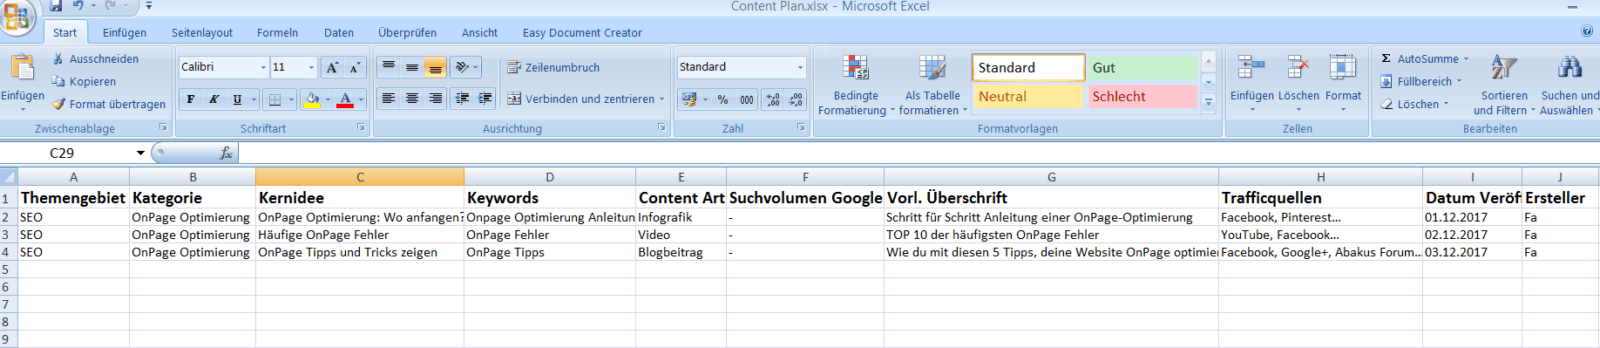 Content Plan Excel - Was ist Content Marketing?